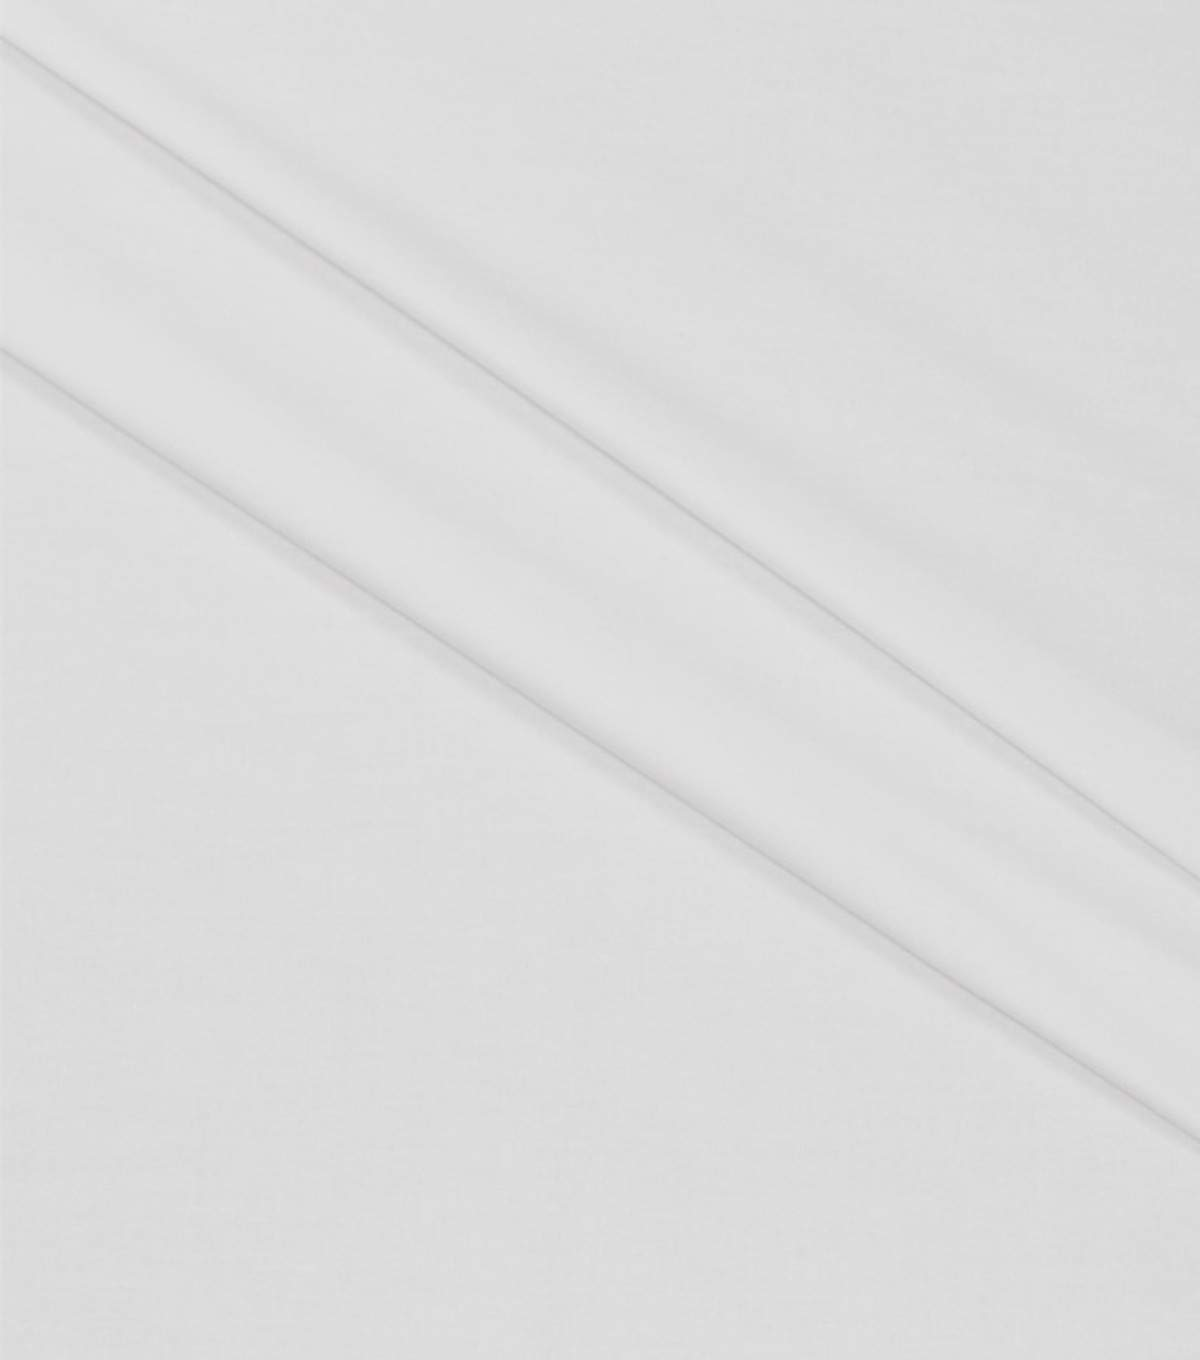 Roc-lon No.5115 118 to 120-Inch Wide Permanent Press Muslin, 15-Yard, Bleached by Roc-lon (Image #4)